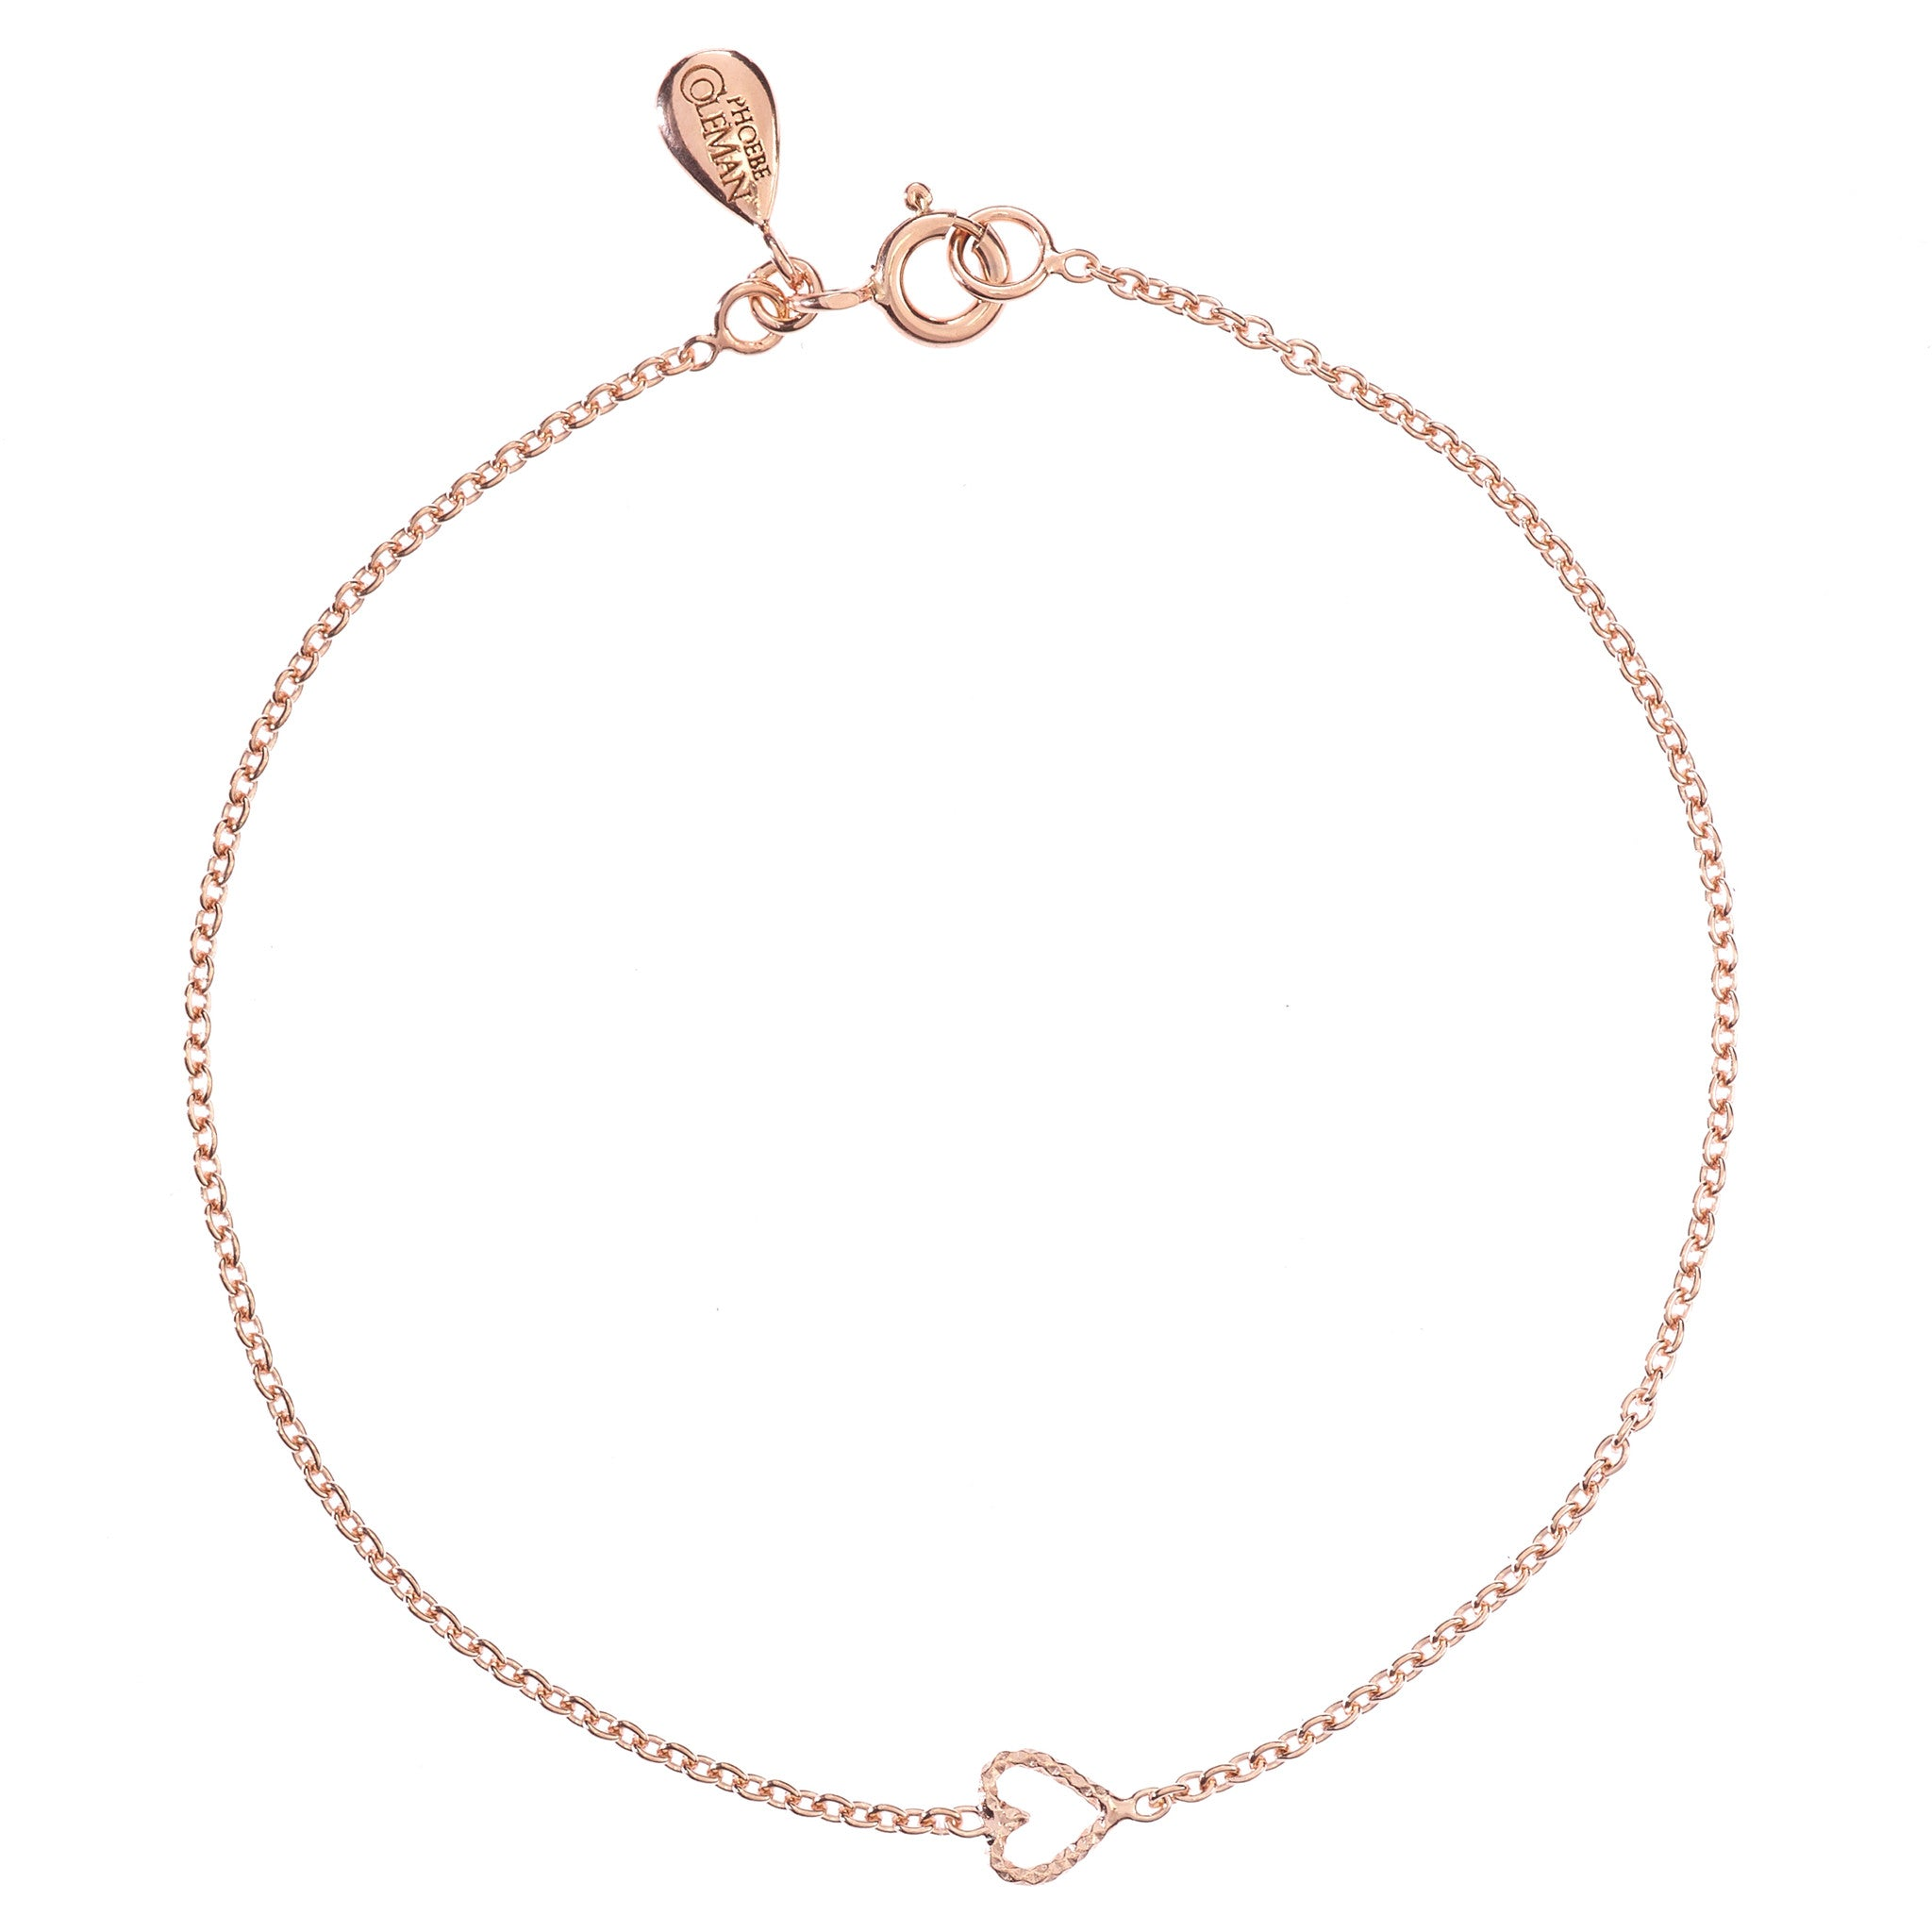 goodies bracelet forever gold pave heart the girly joma product fine rose